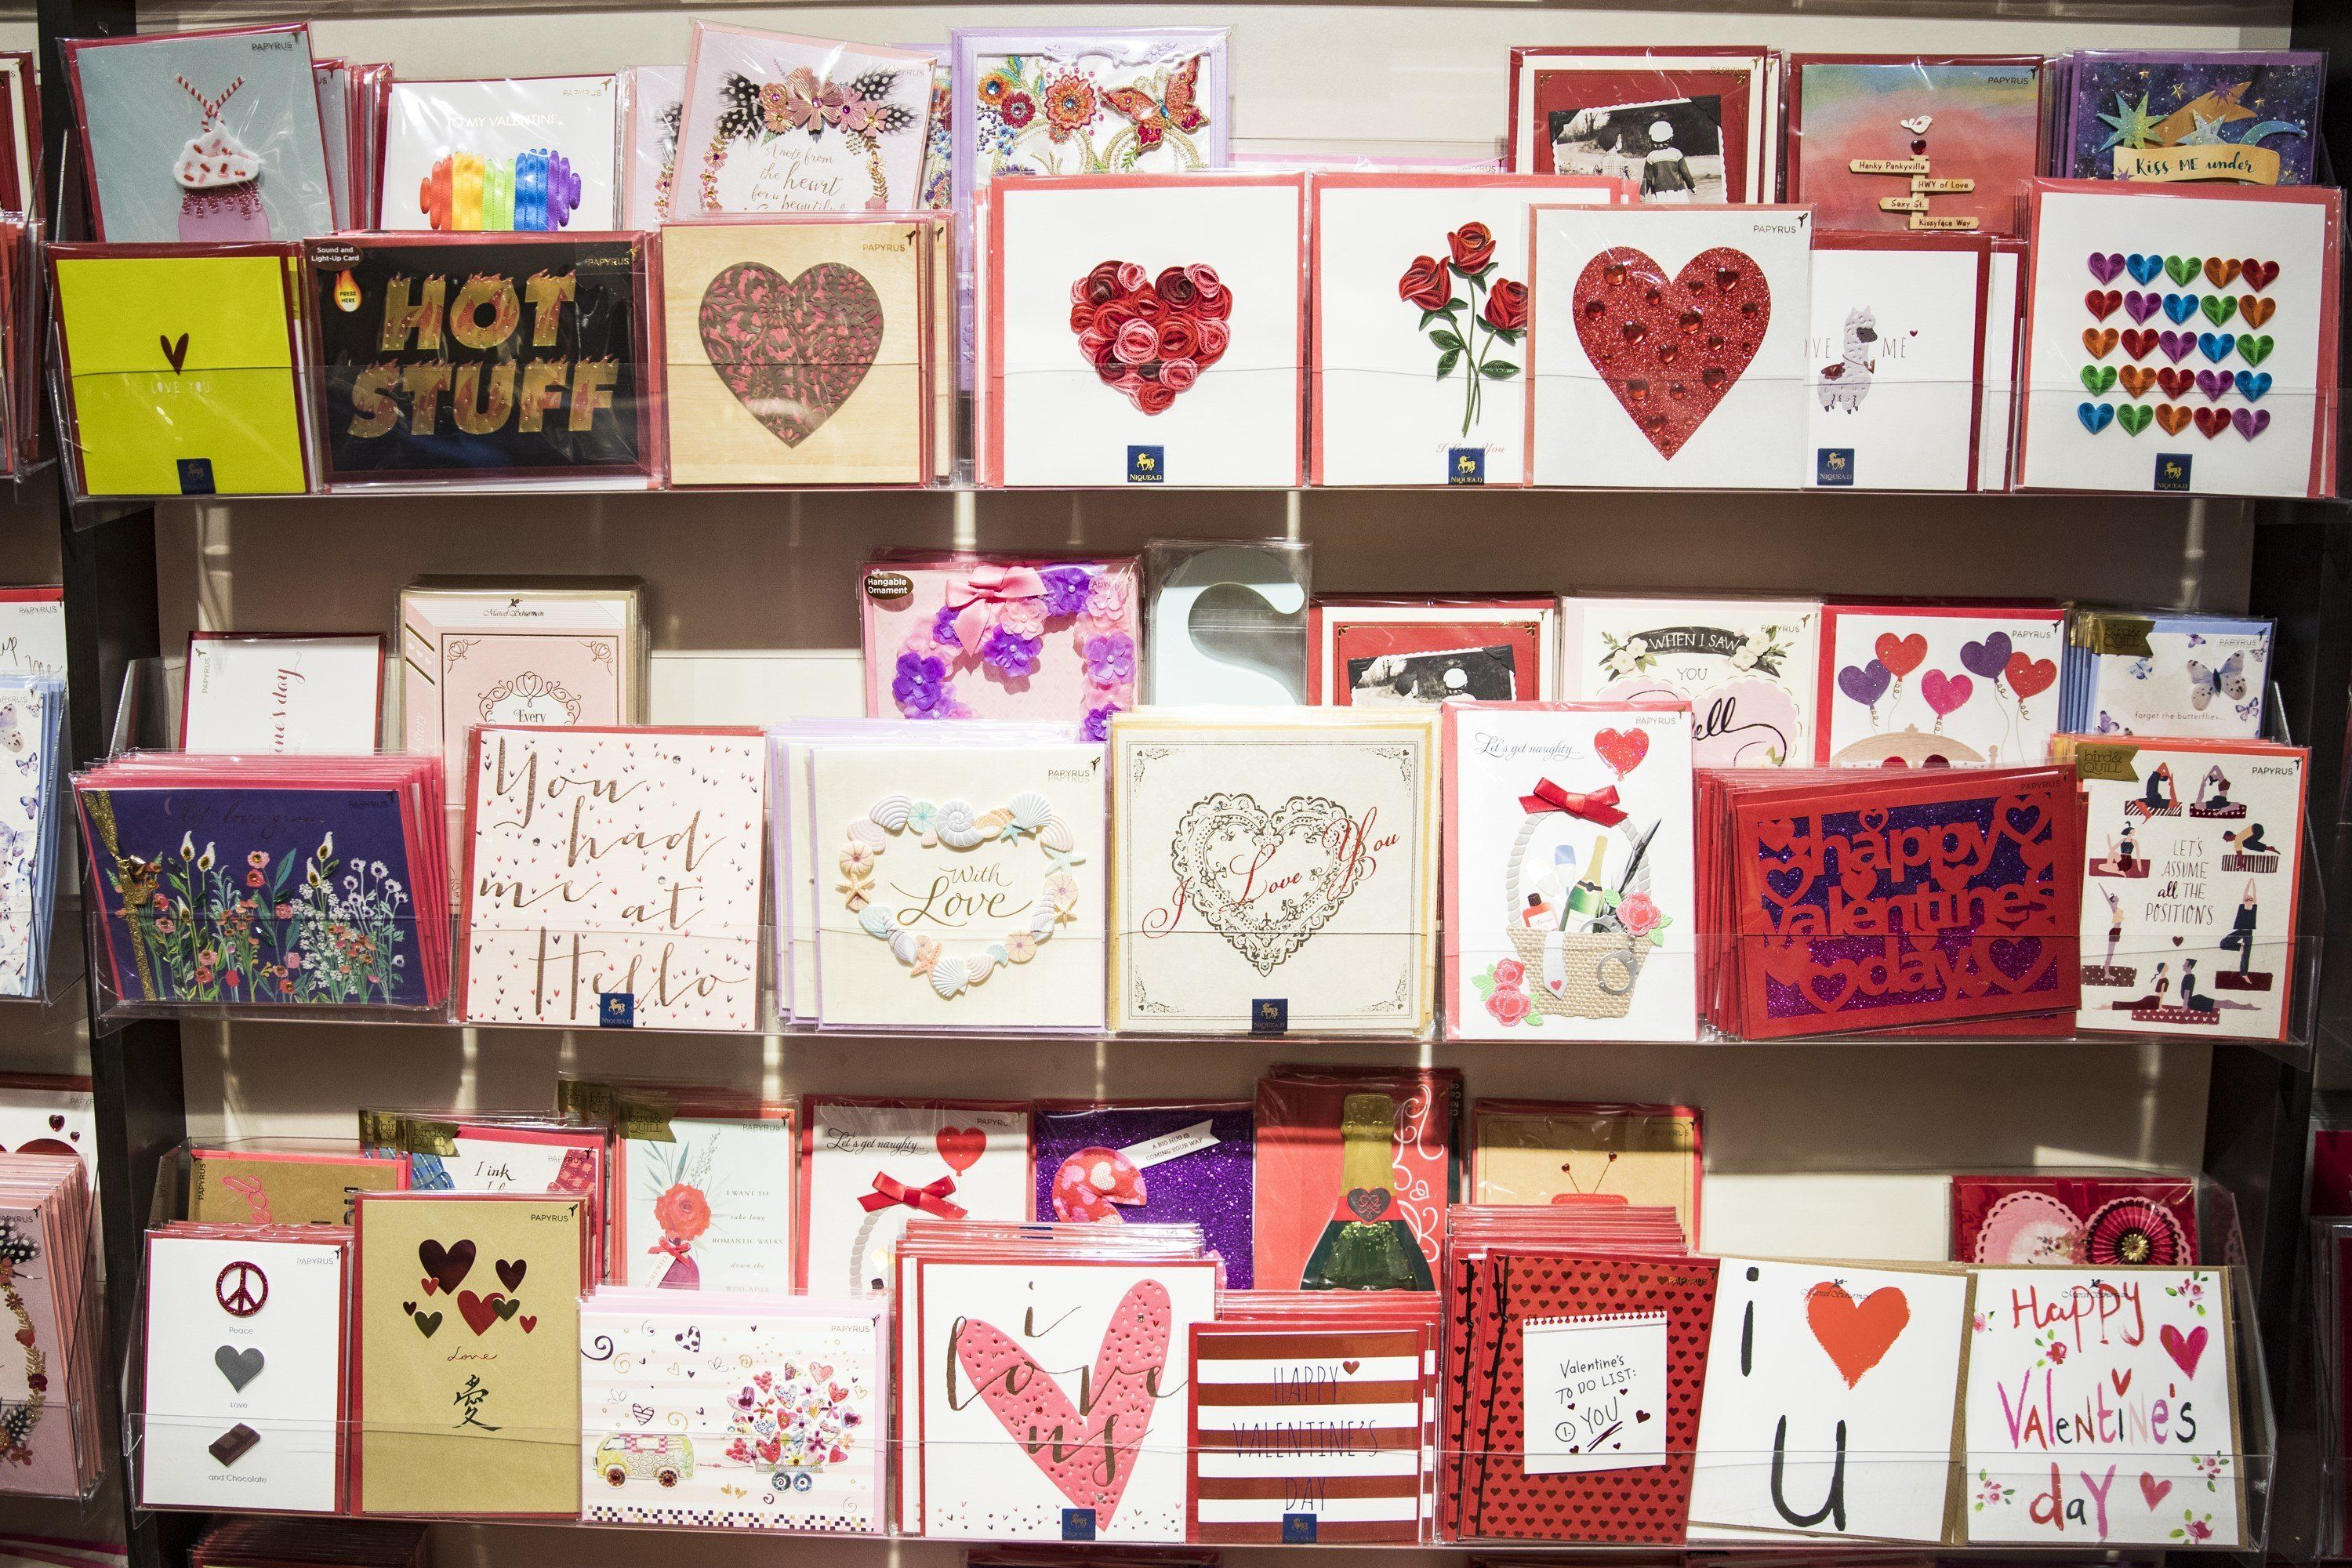 Valentine's Day cards on display in a store at Union Station in Washington, D.C.